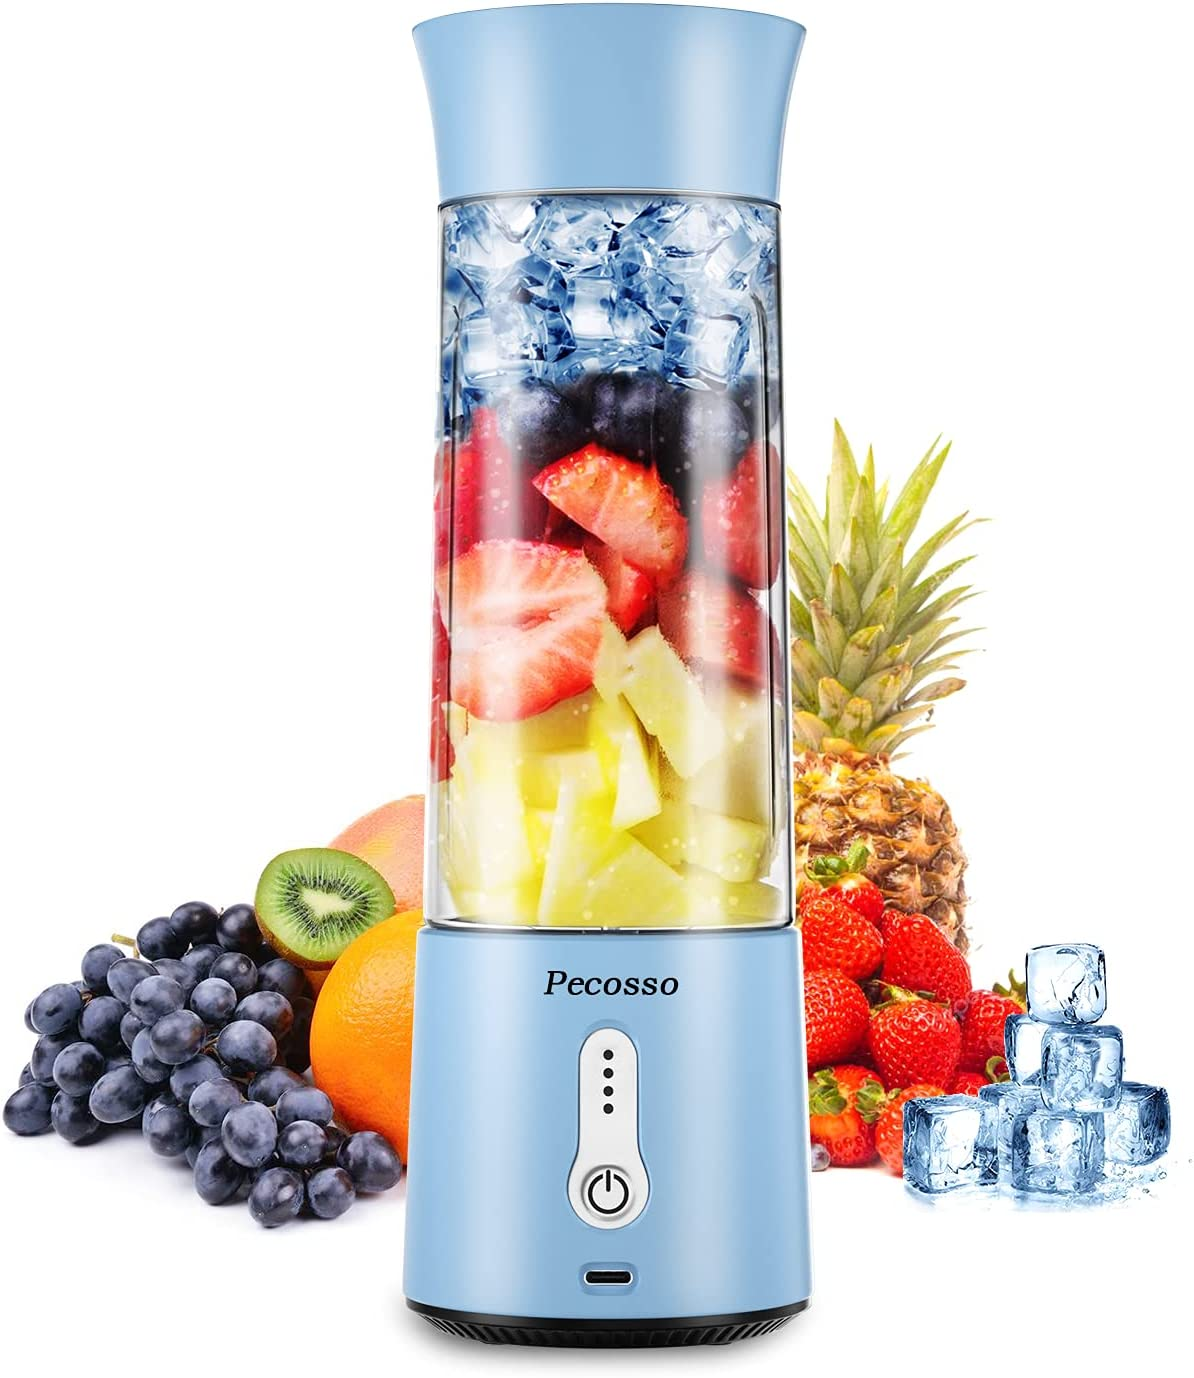 Pecosso Portable Blender,17 Oz Personal Size Blender,Type-C 4000mAh Rechargeable Blender with 500ml Bottle,IPX7 Waterproof Blender for Shakes and Smoothies